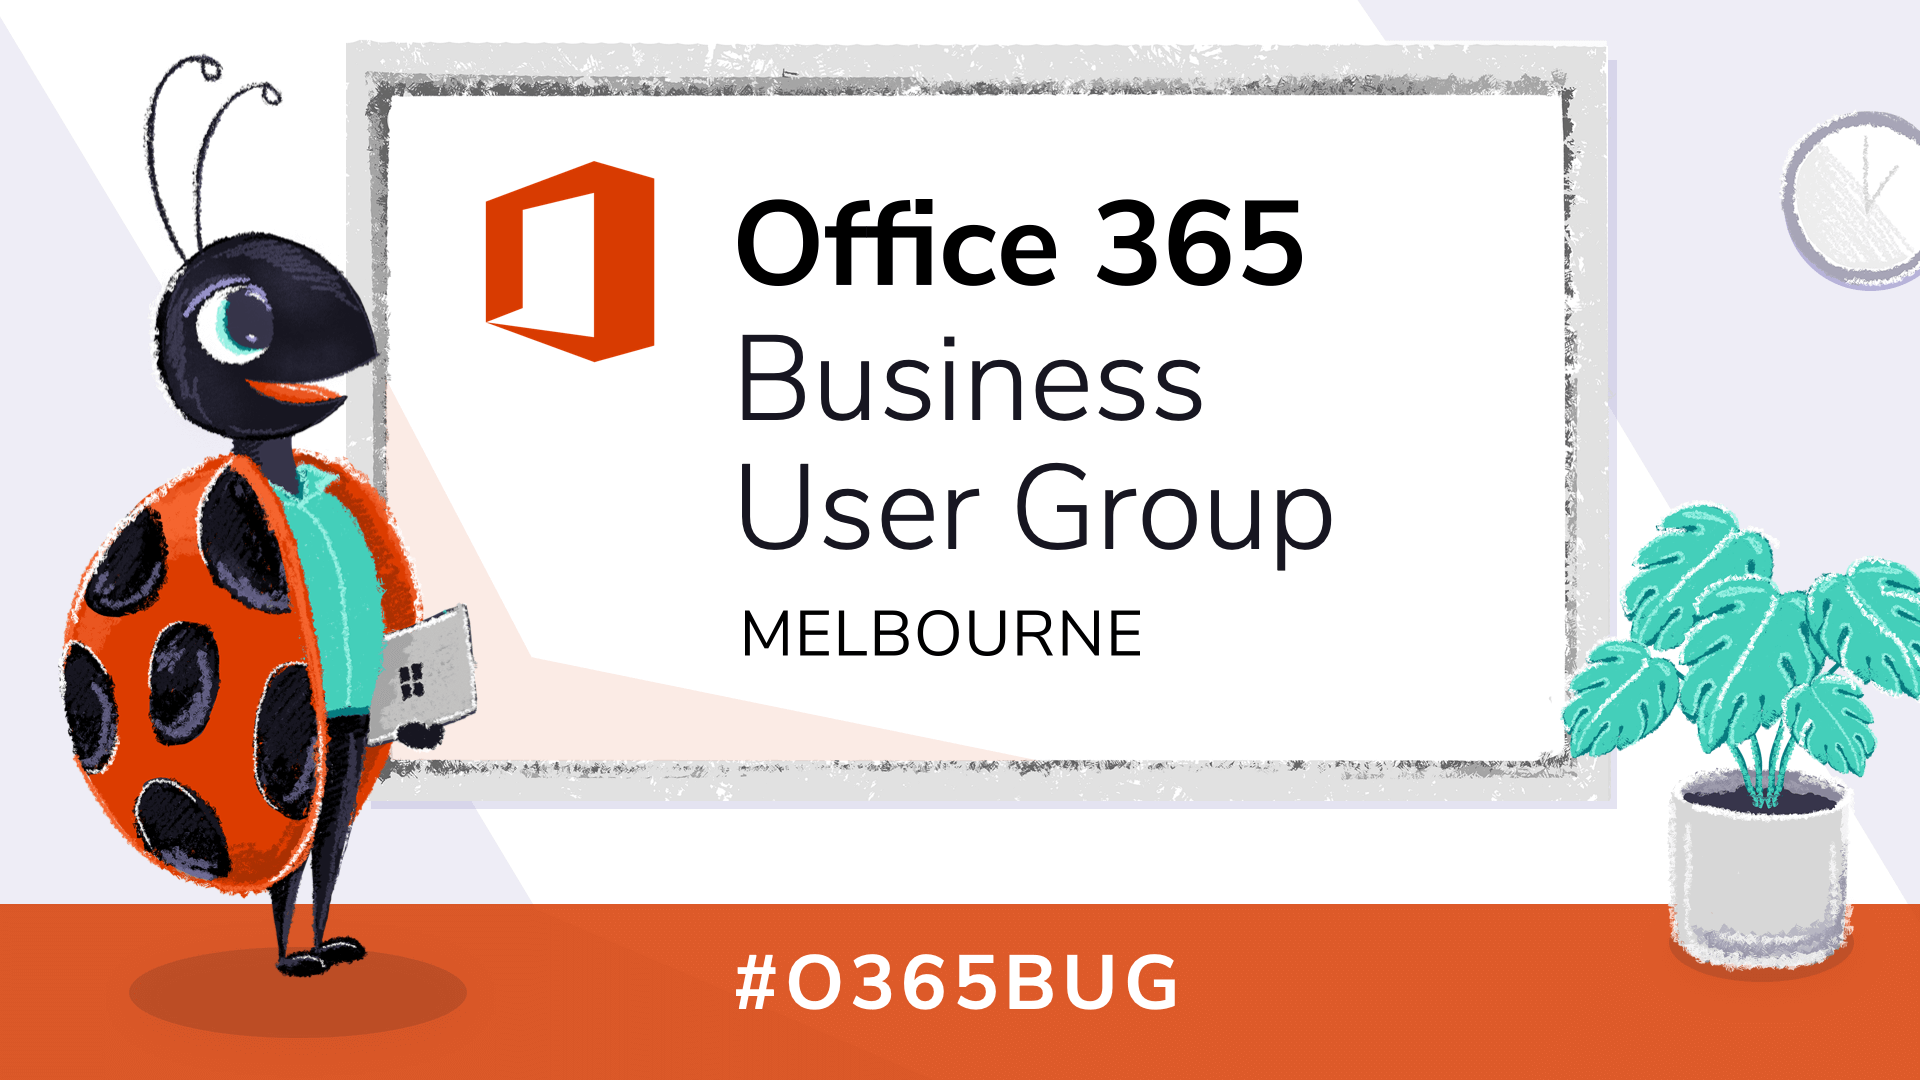 Office 365 Business Users - Melbourne